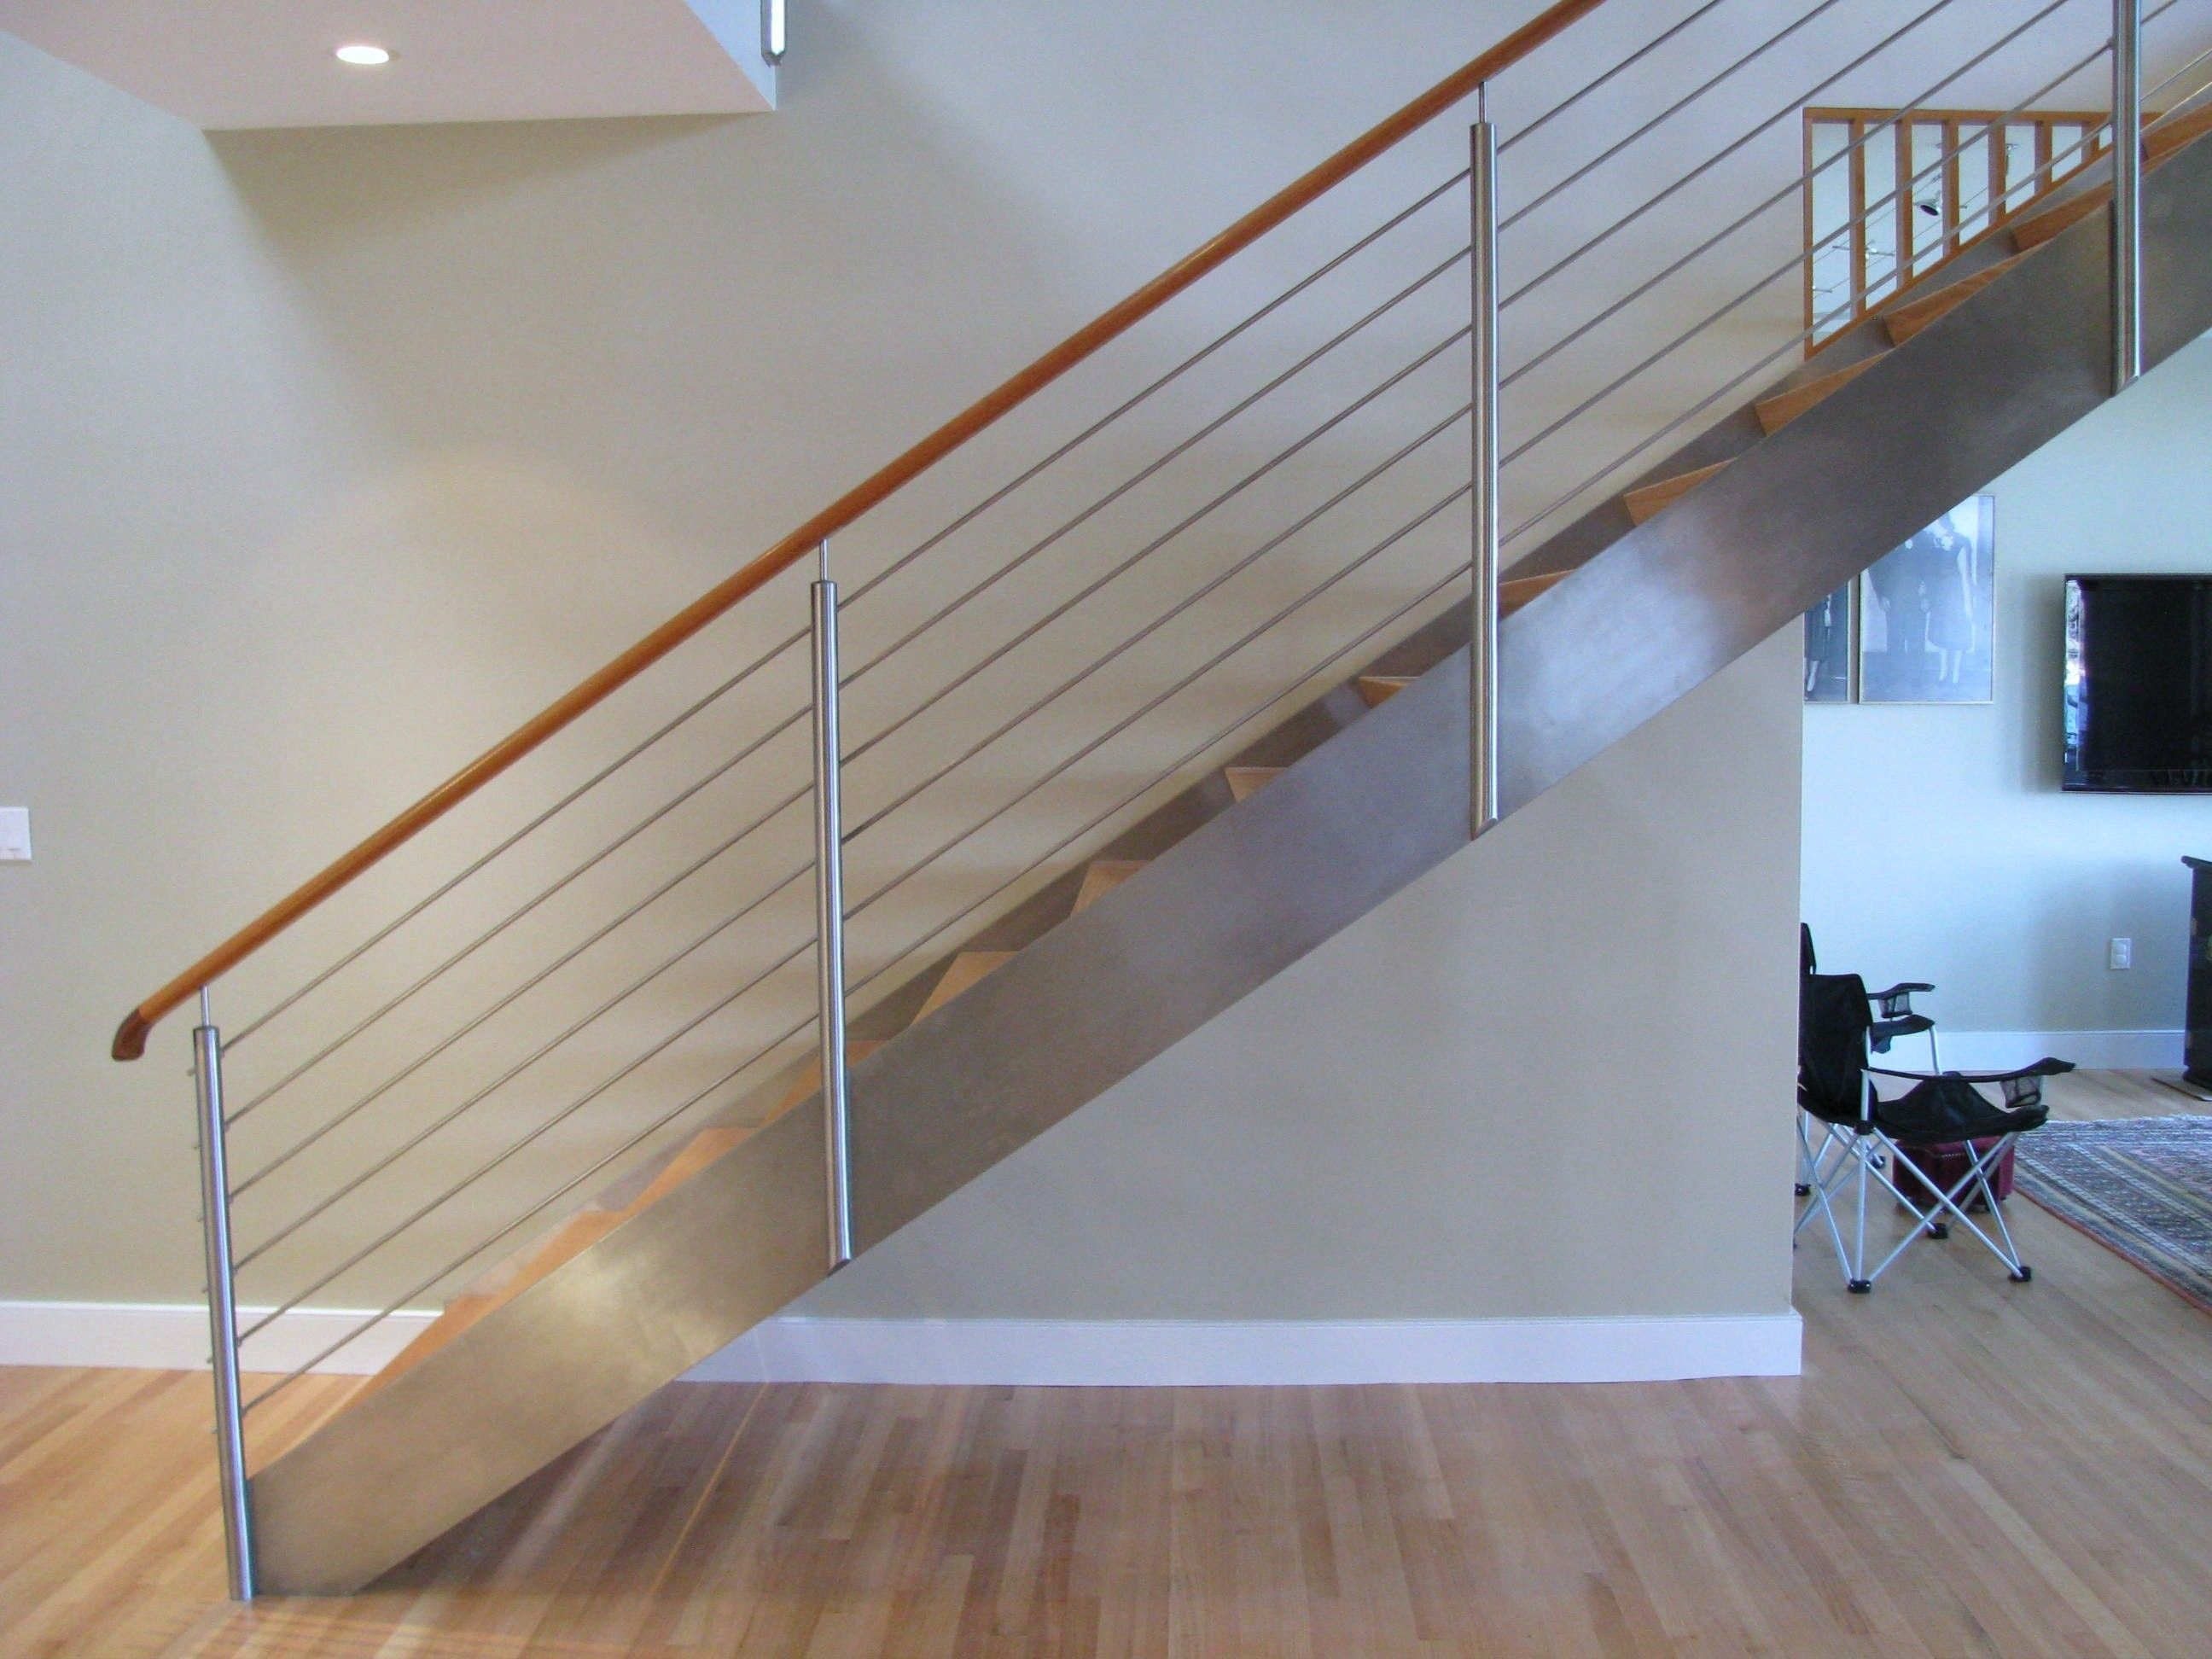 Perfect Open Riser Stair Made With Stainless Steel Plate Stringers And Stair Rails  Featuring Stainless Steel Posts